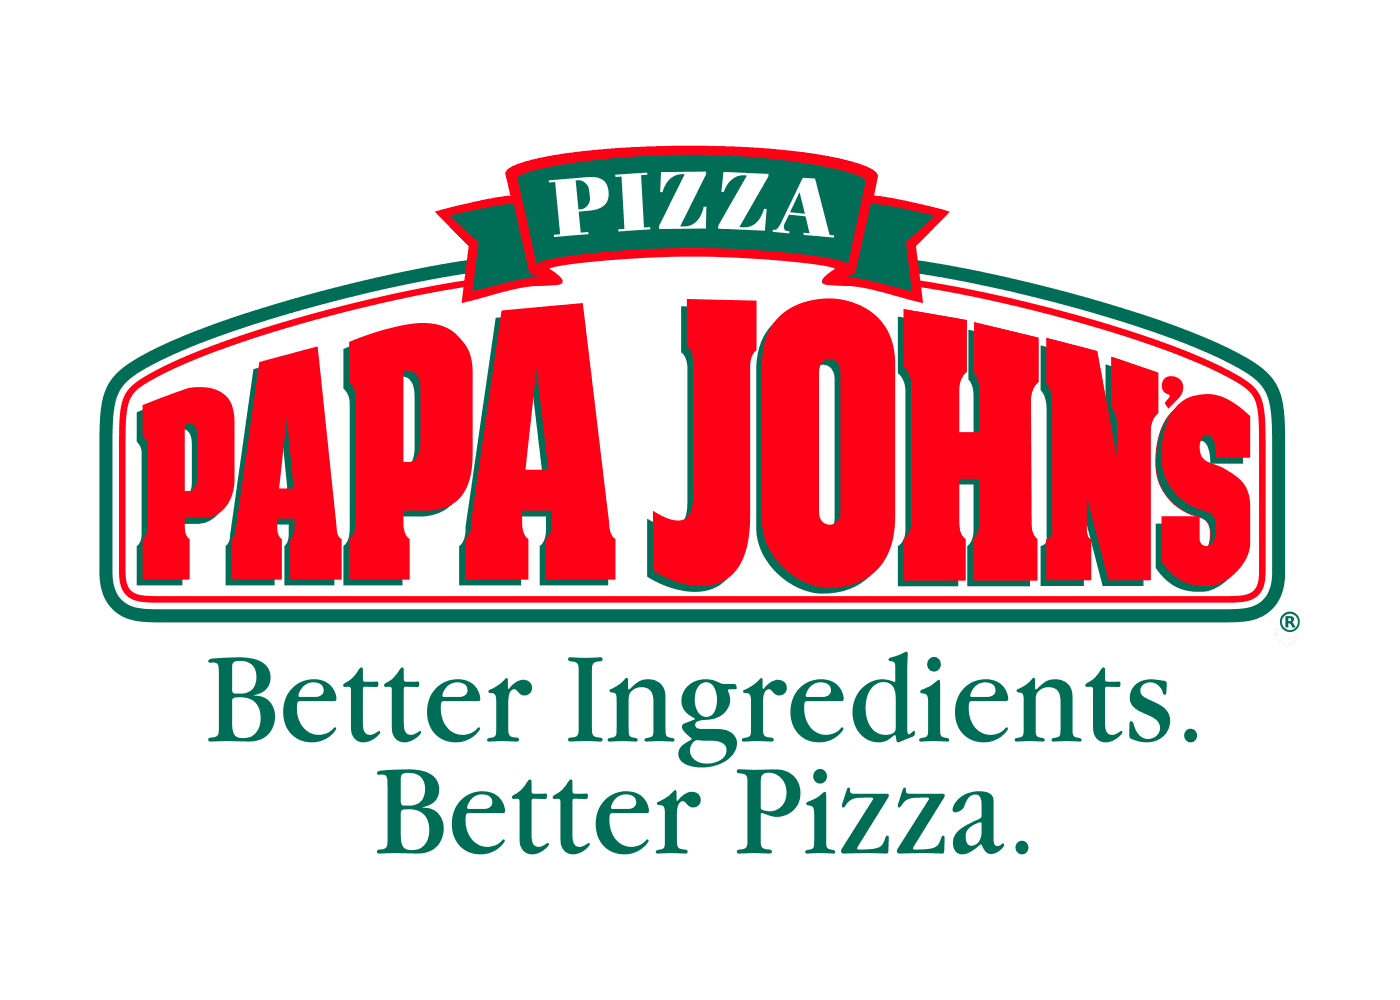 PapaJohns Opens in new window